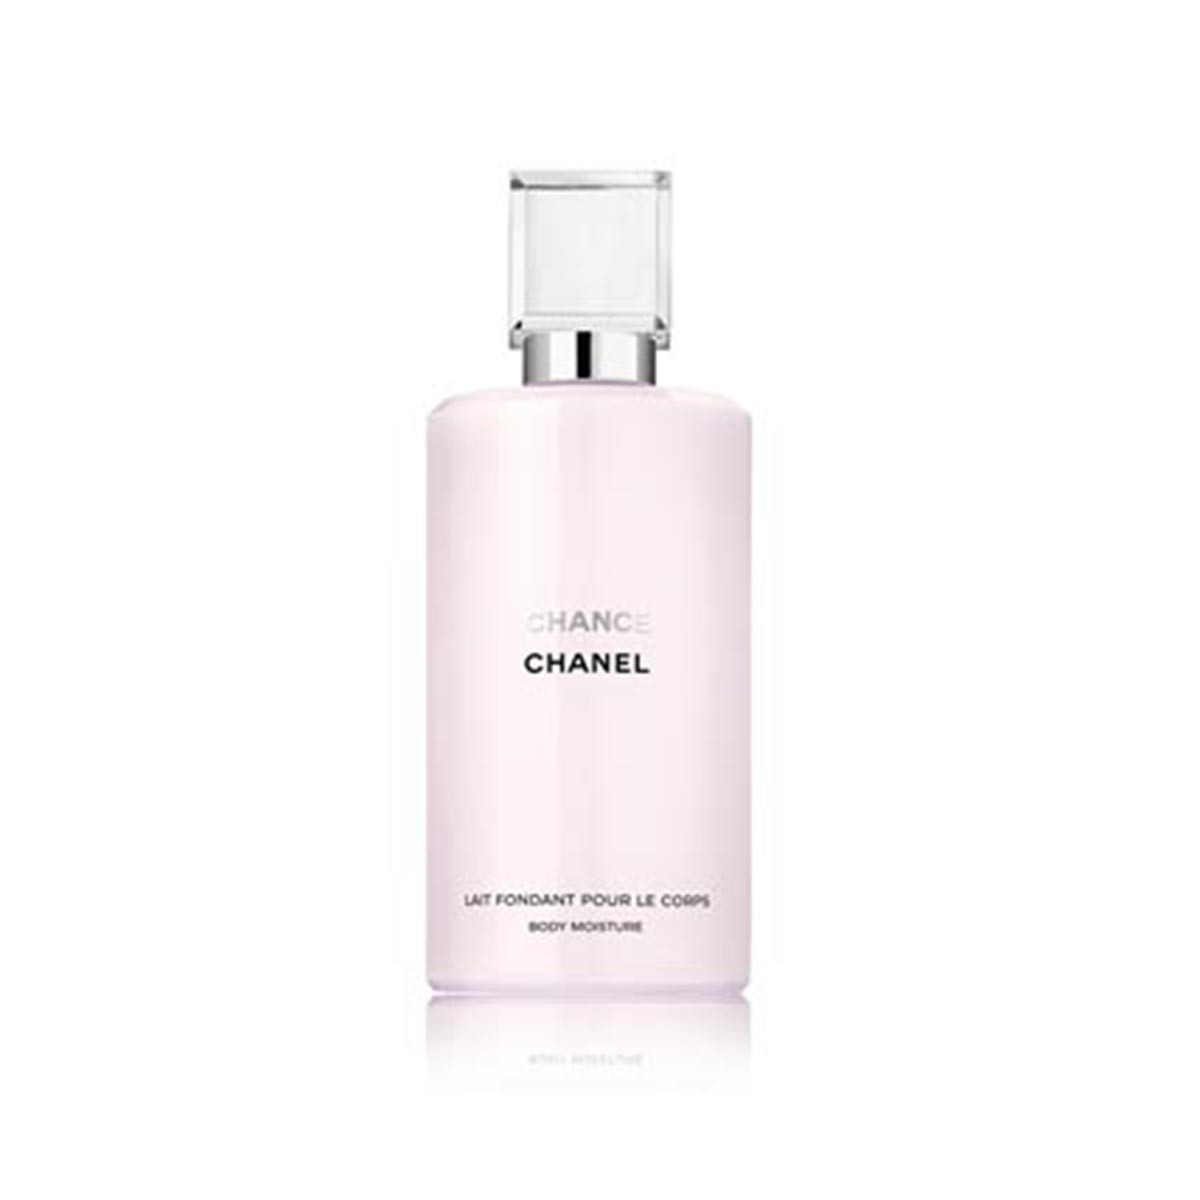 Chanel Chance Body Milk 200 ml